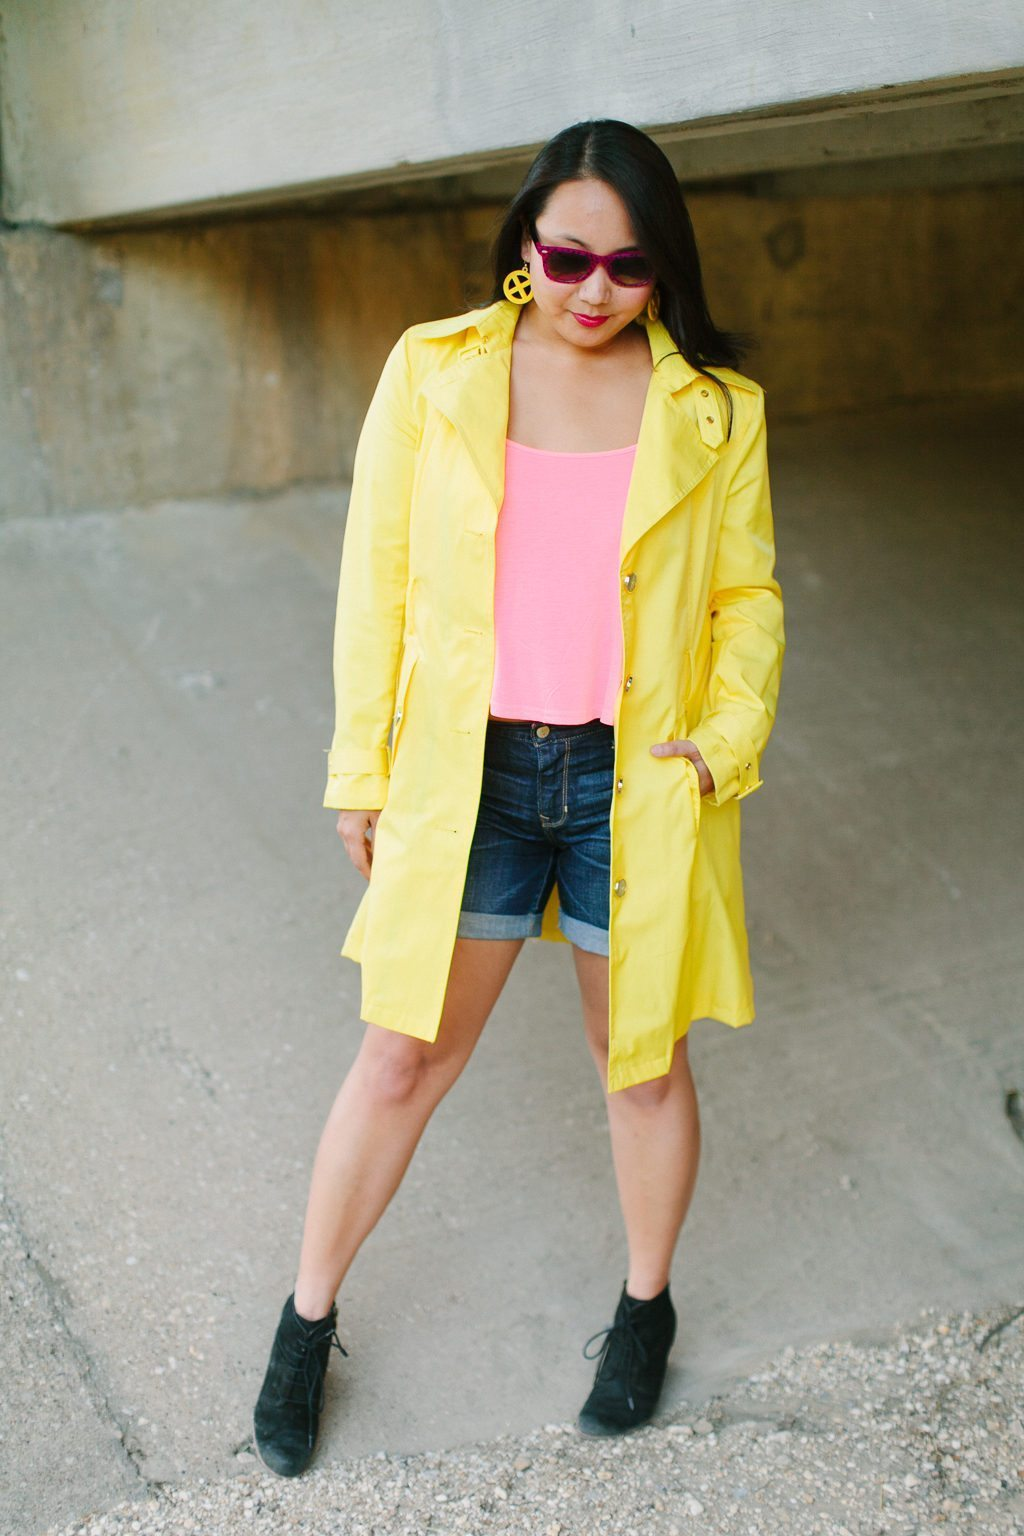 xmen-jubilee-cosplay-outfit-5644